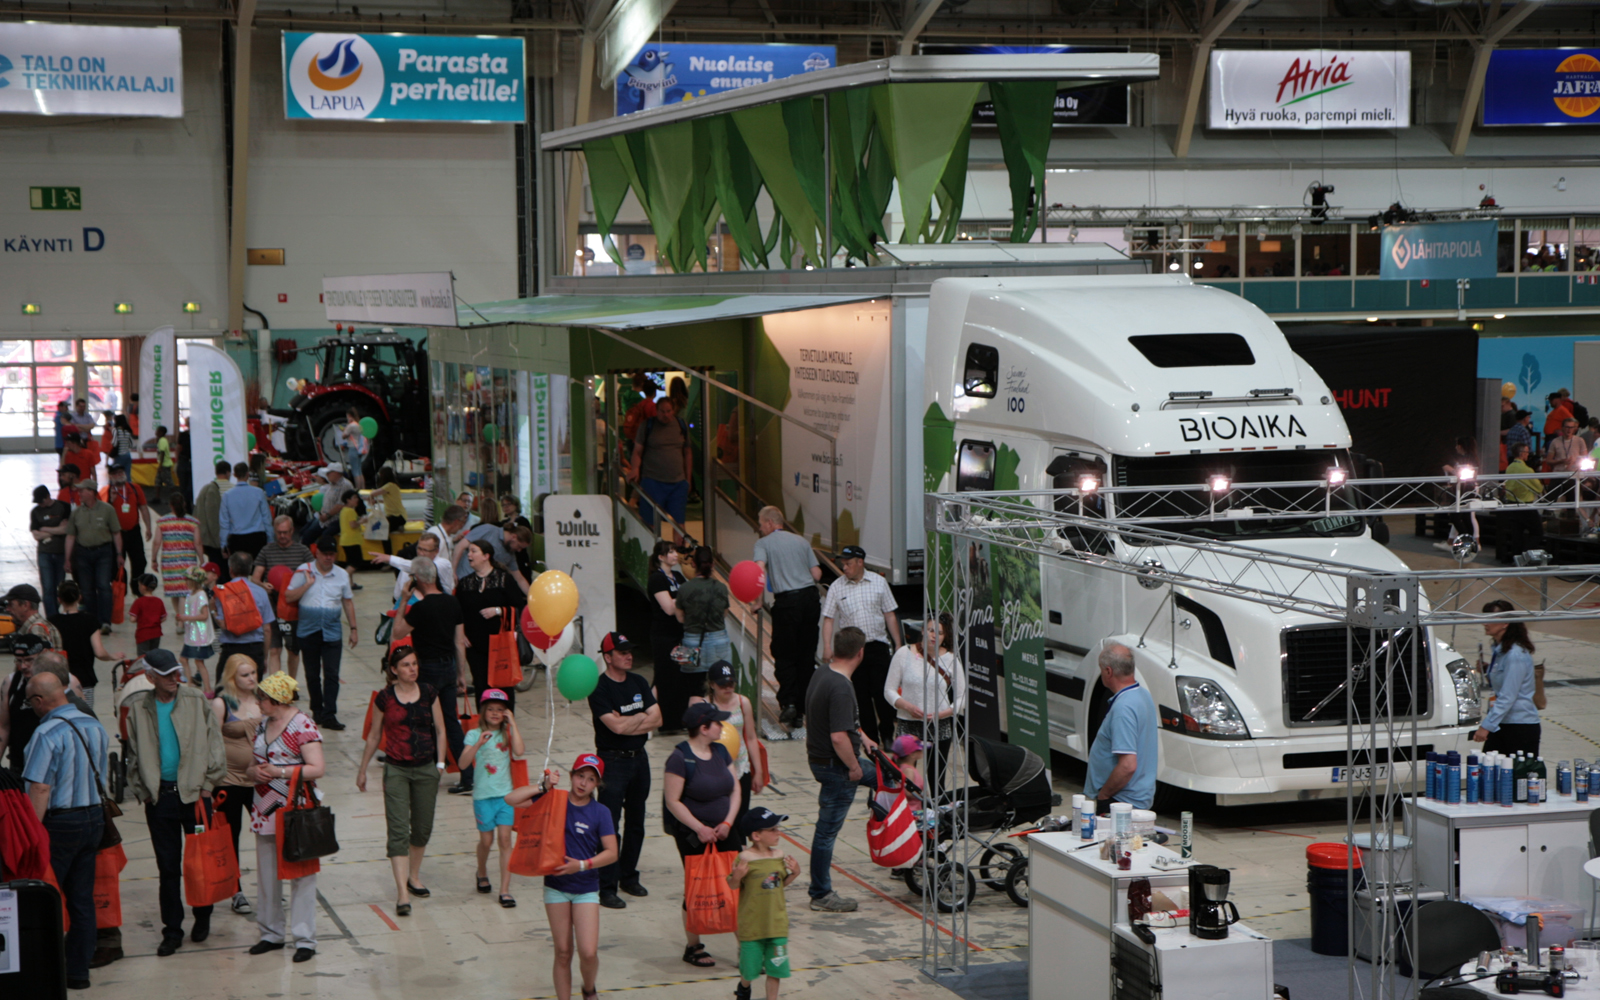 The biofuel-powered lorry will journey throughout Finland and will stop in a total of one hundred localities. Photo: Anna Kauppi